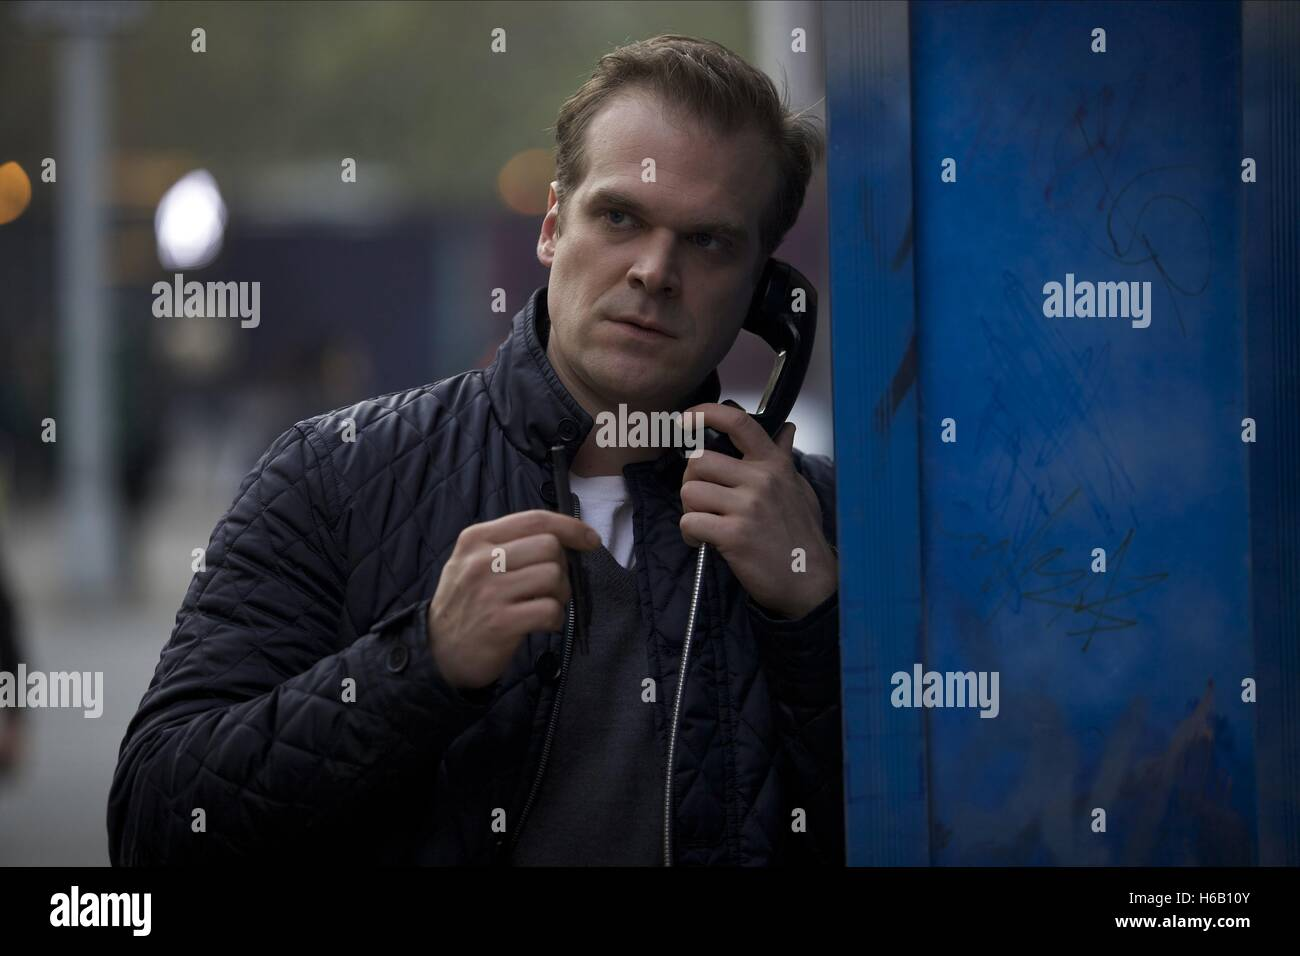 DAVID HARBOUR A WALK AMONG THE TOMBSTONES (2014) - Stock Image